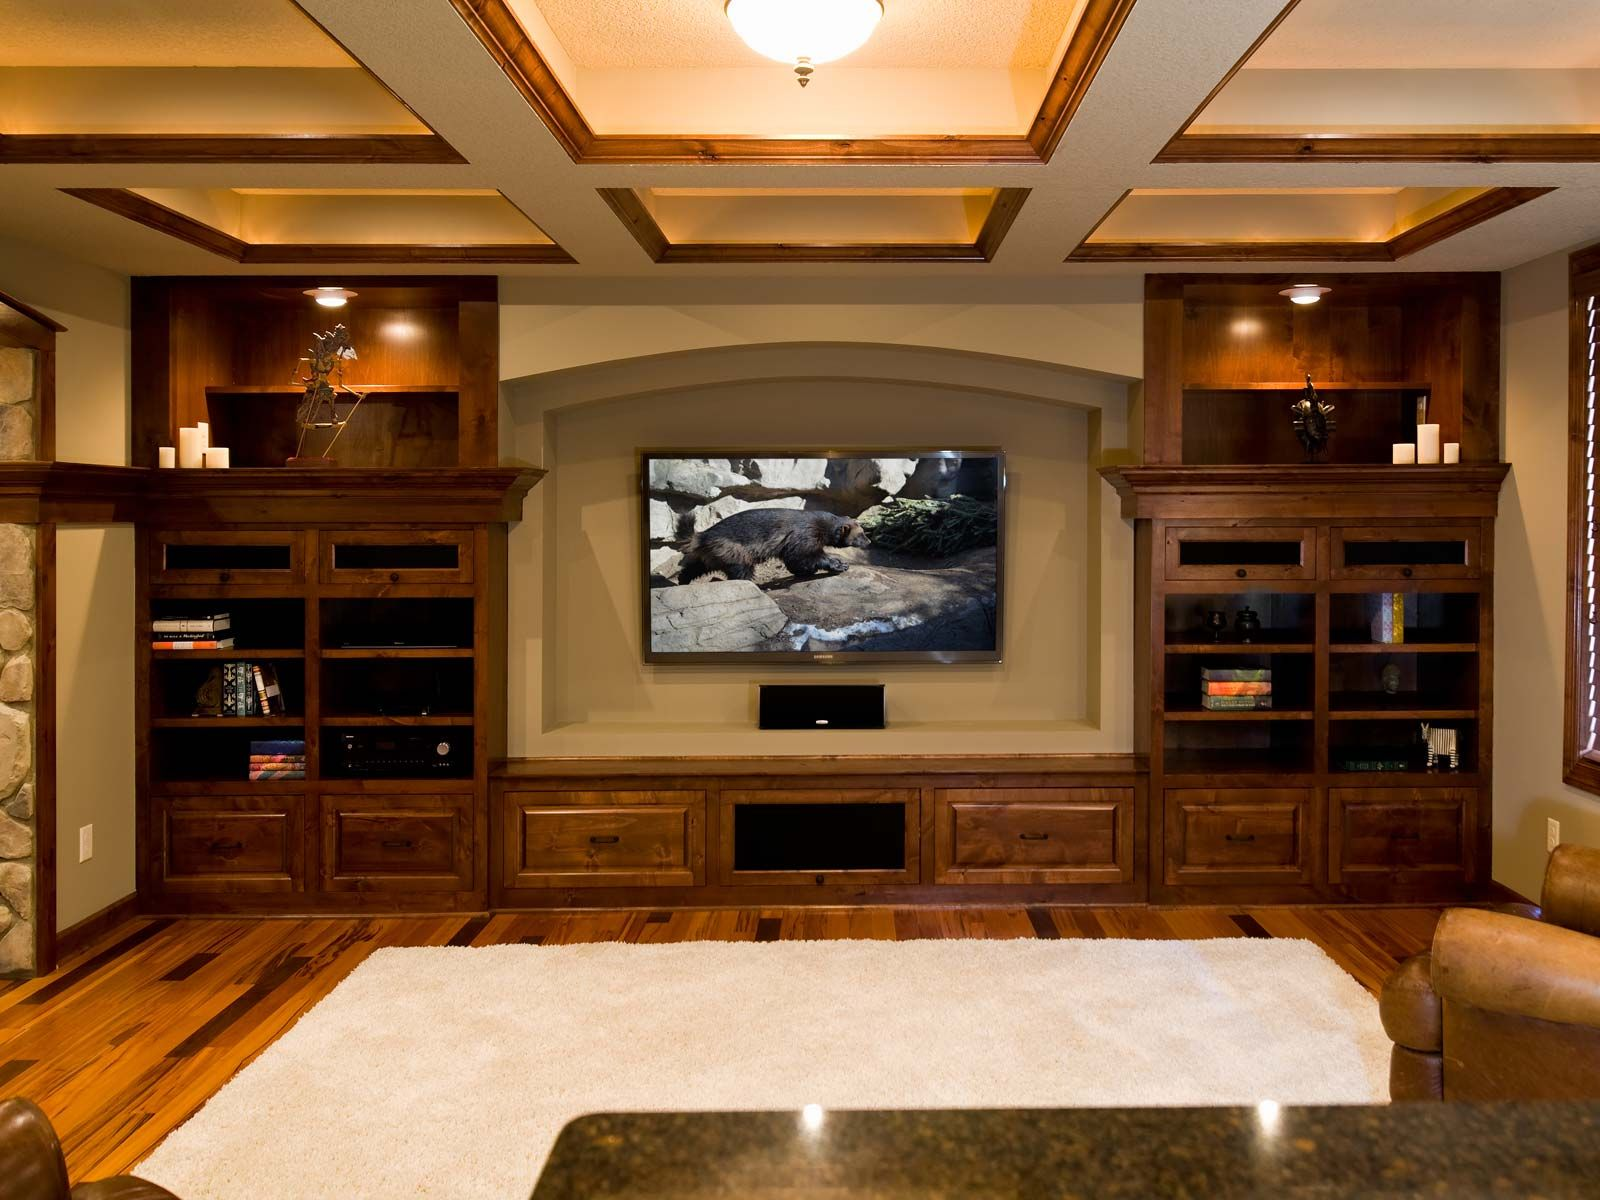 Finished Basement Pics 25 Inspiring Finished Basement Designs  Basements Finished